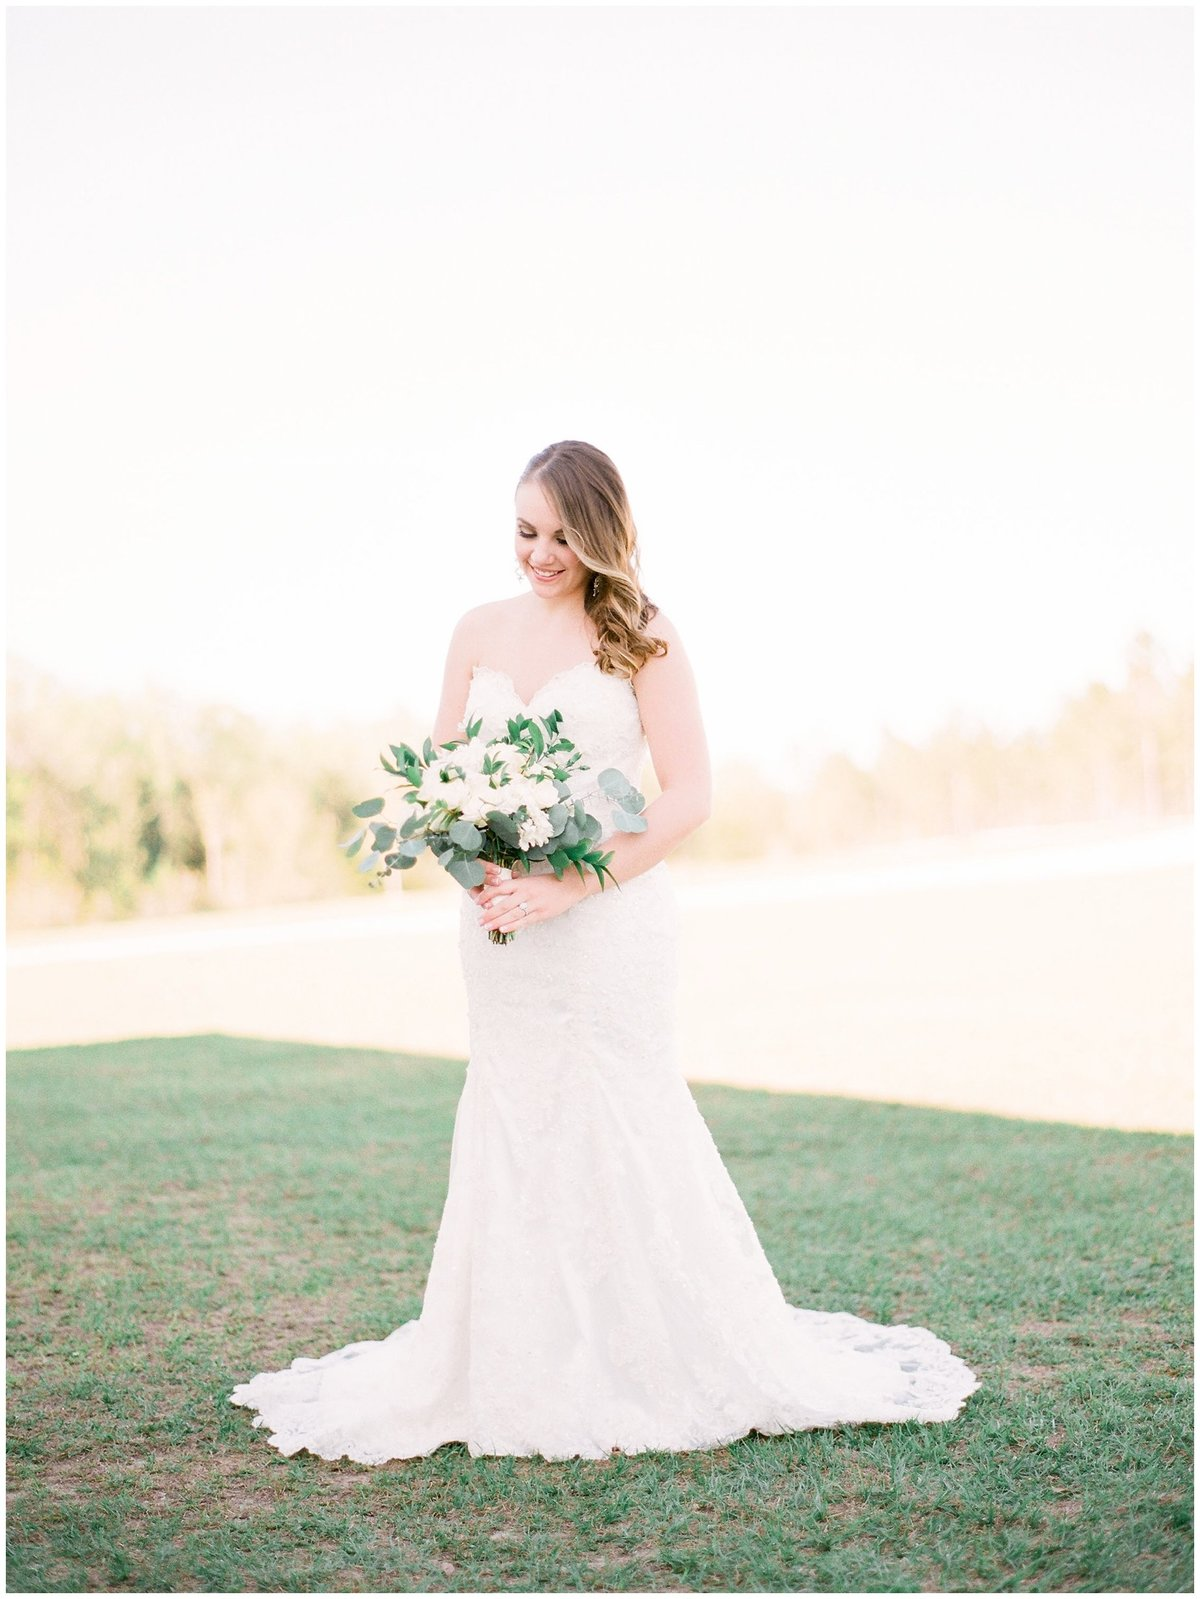 Jesse-Carleton-Panama City Florida-Wedding-Photographer-Barn Weddings-Session-Photography-Rosie Creek Farms-destination photographer_0193